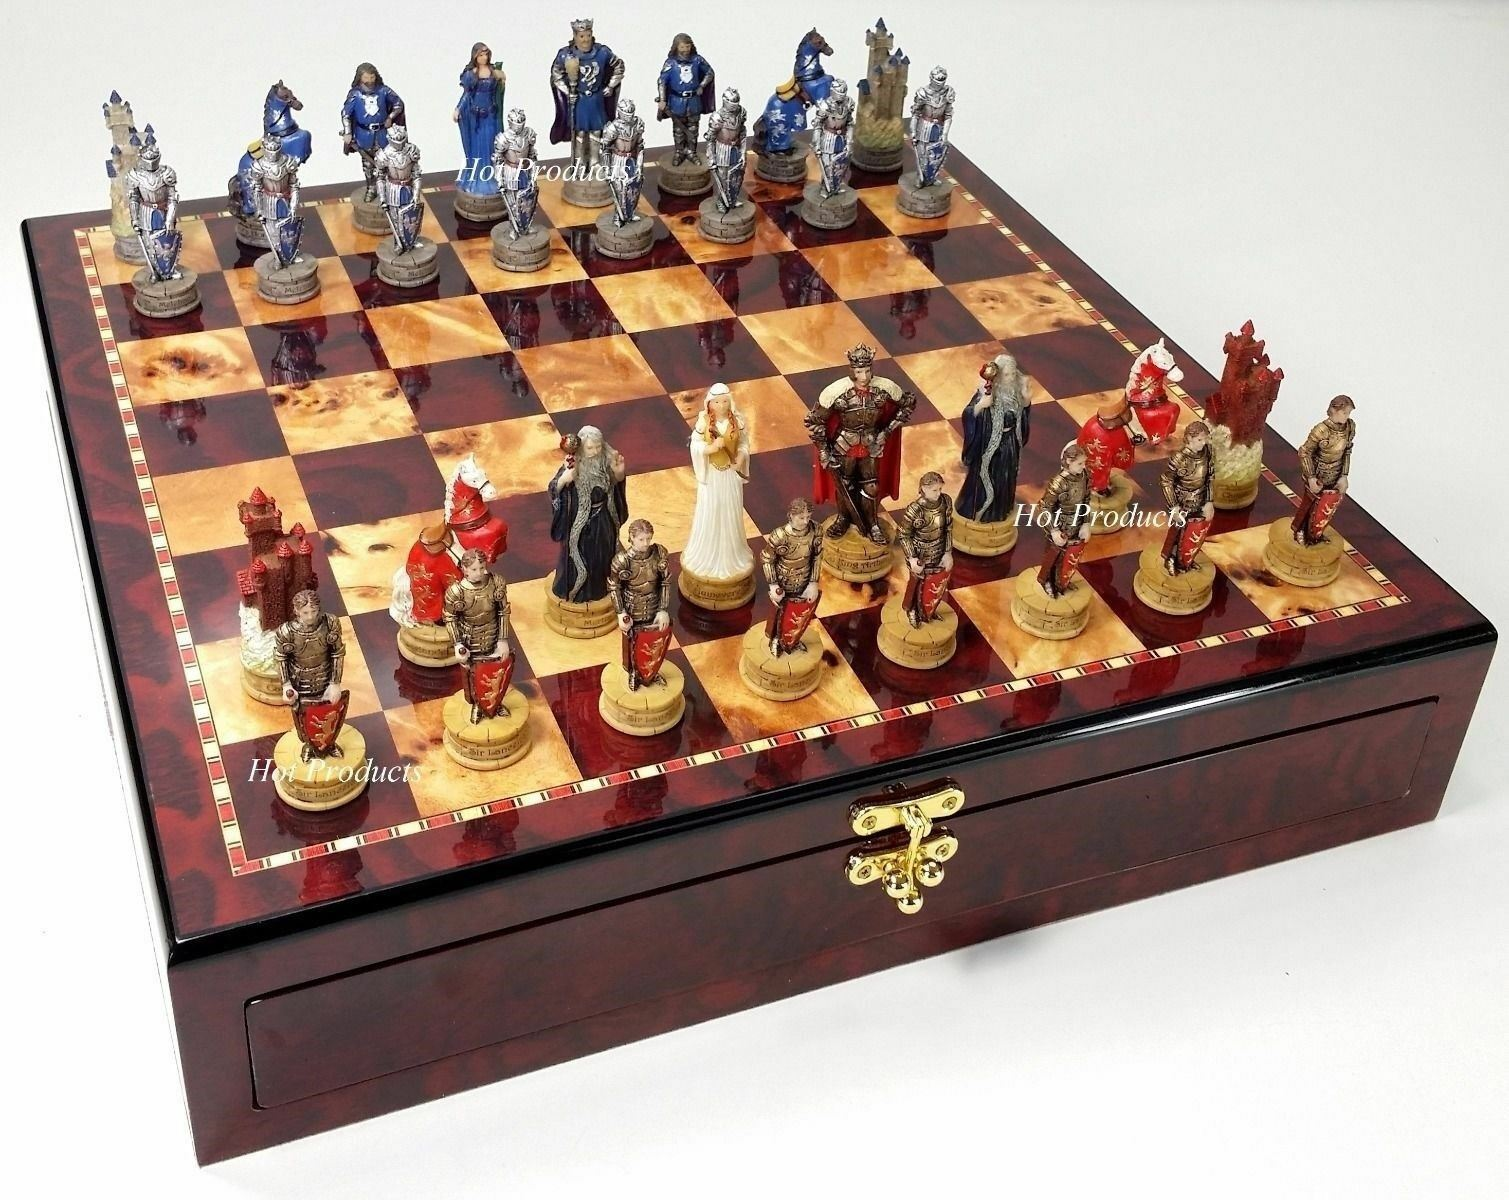 MEDIEVAL TIMES Crusades KING ARTHUR CAMELOT Chess Set Cherry Coloree STORAGE BOARD